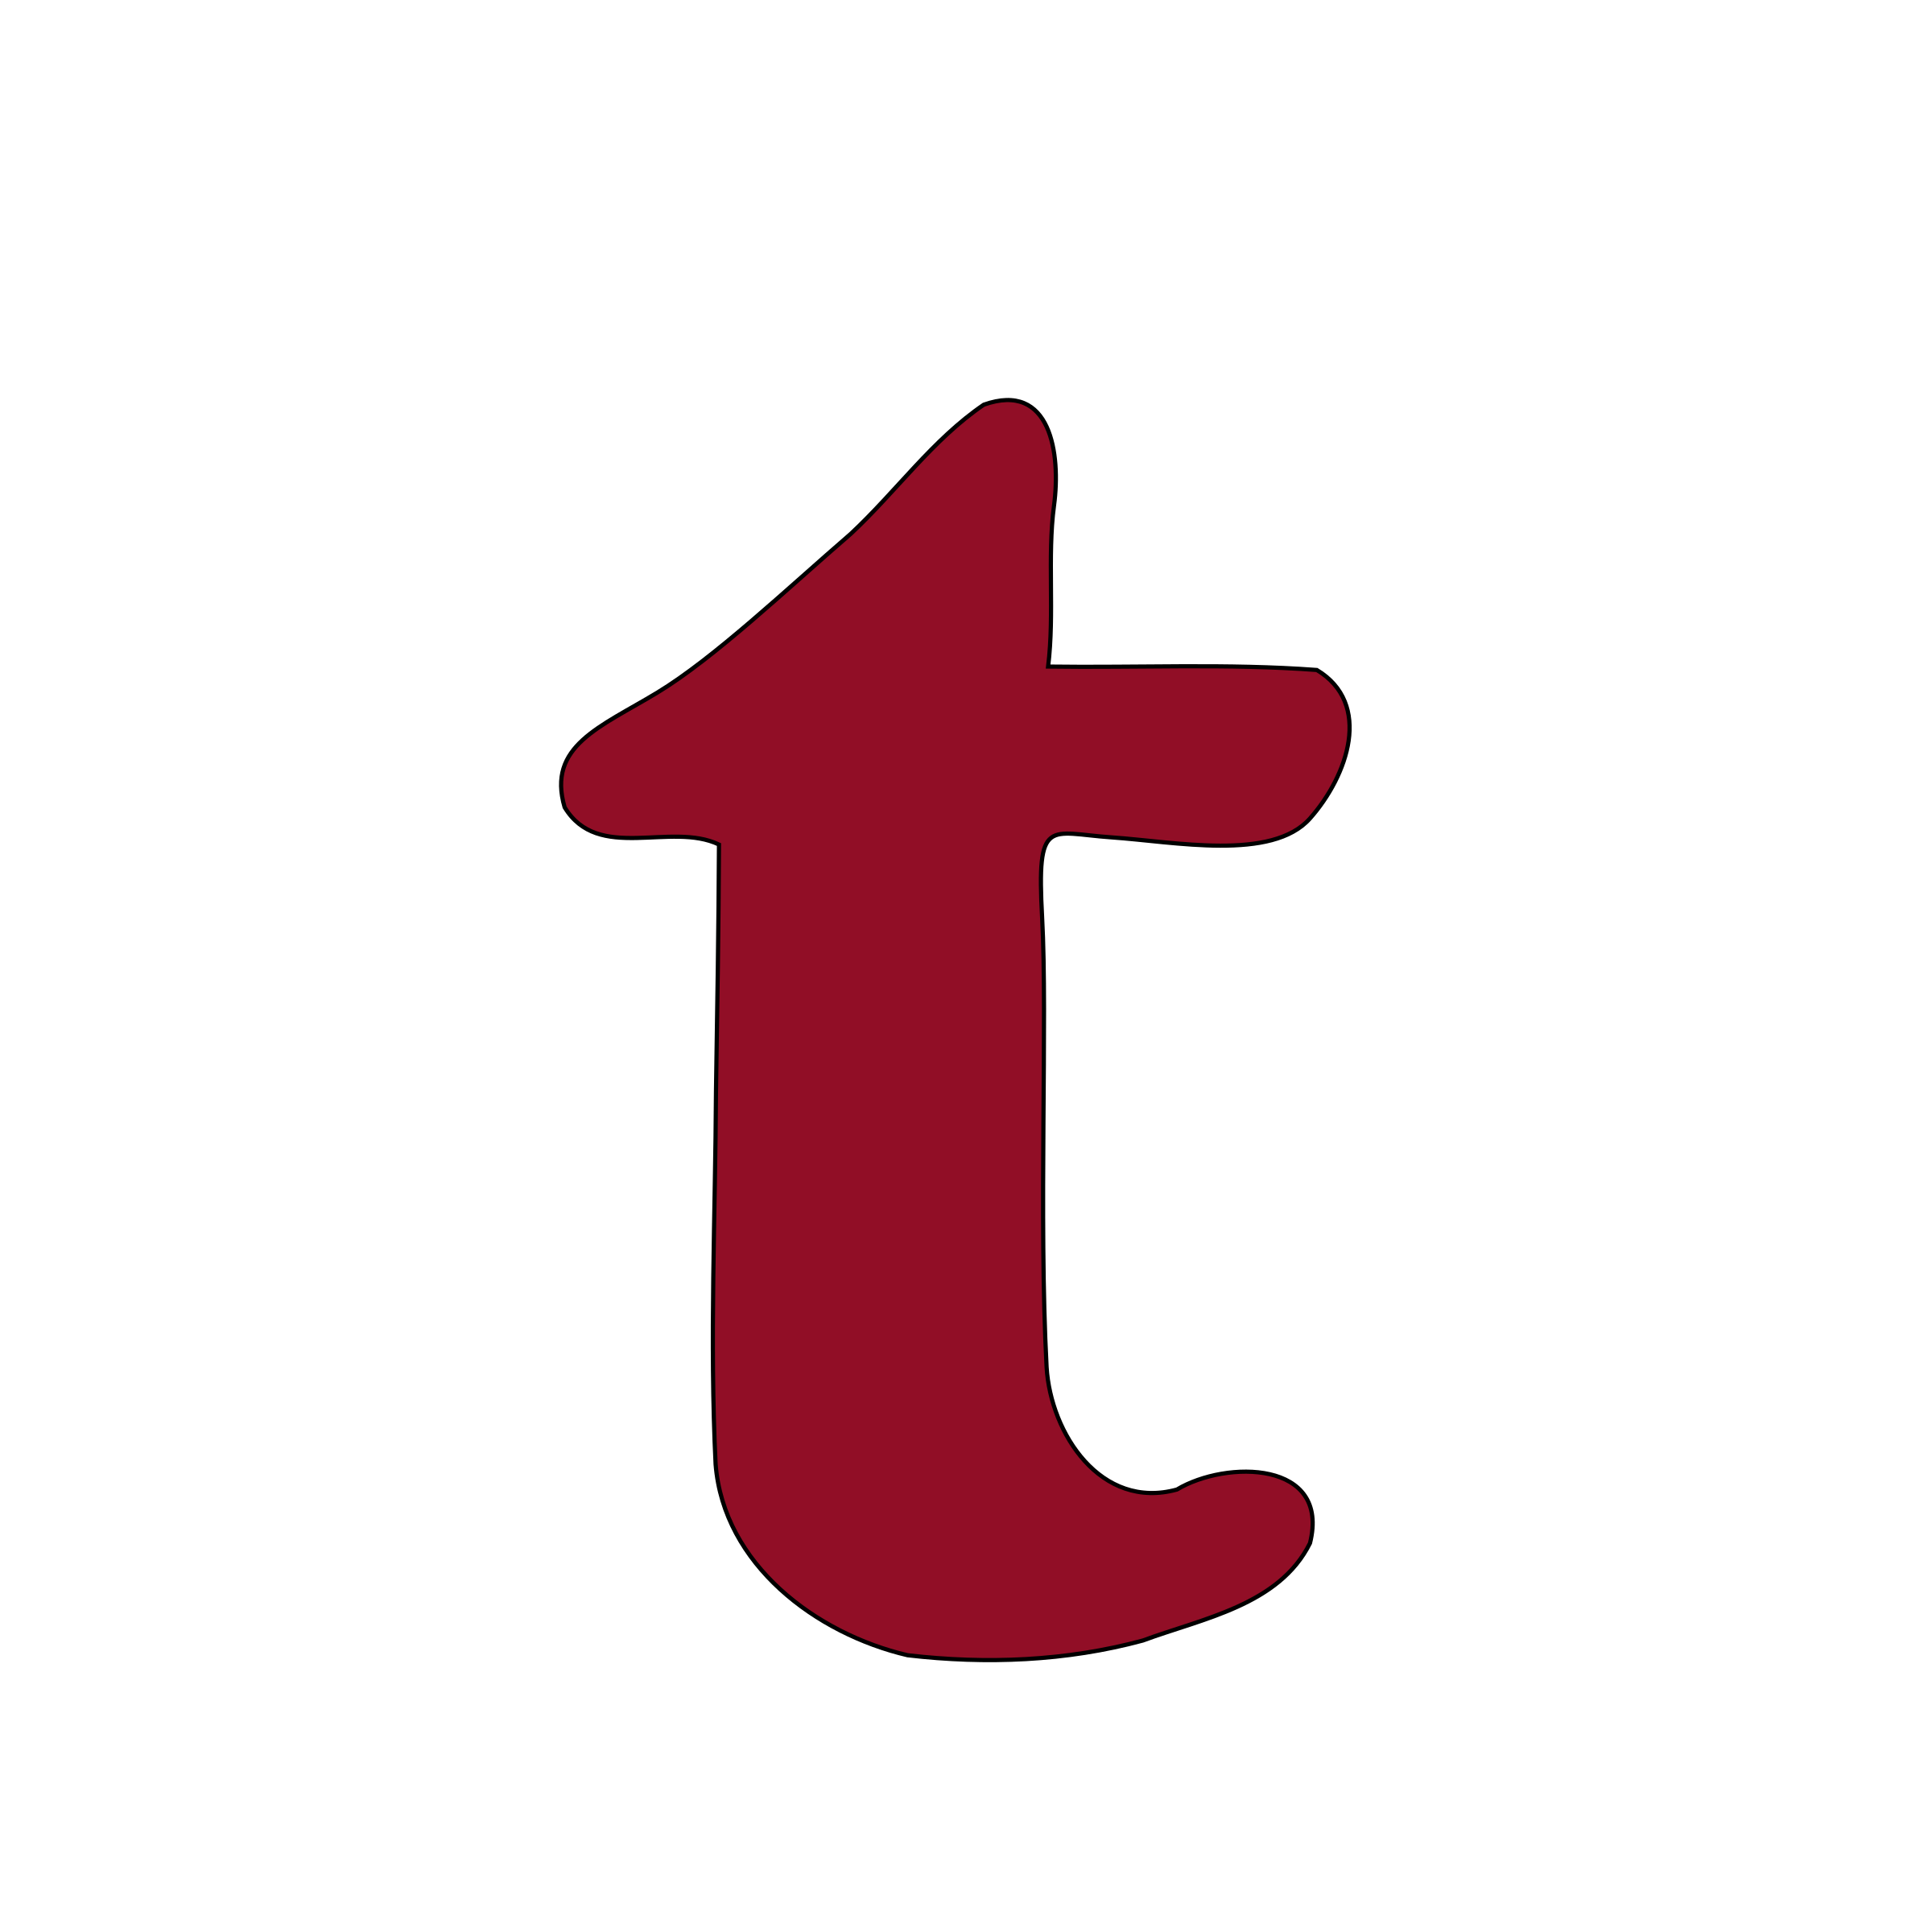 lowercase t by tuamora